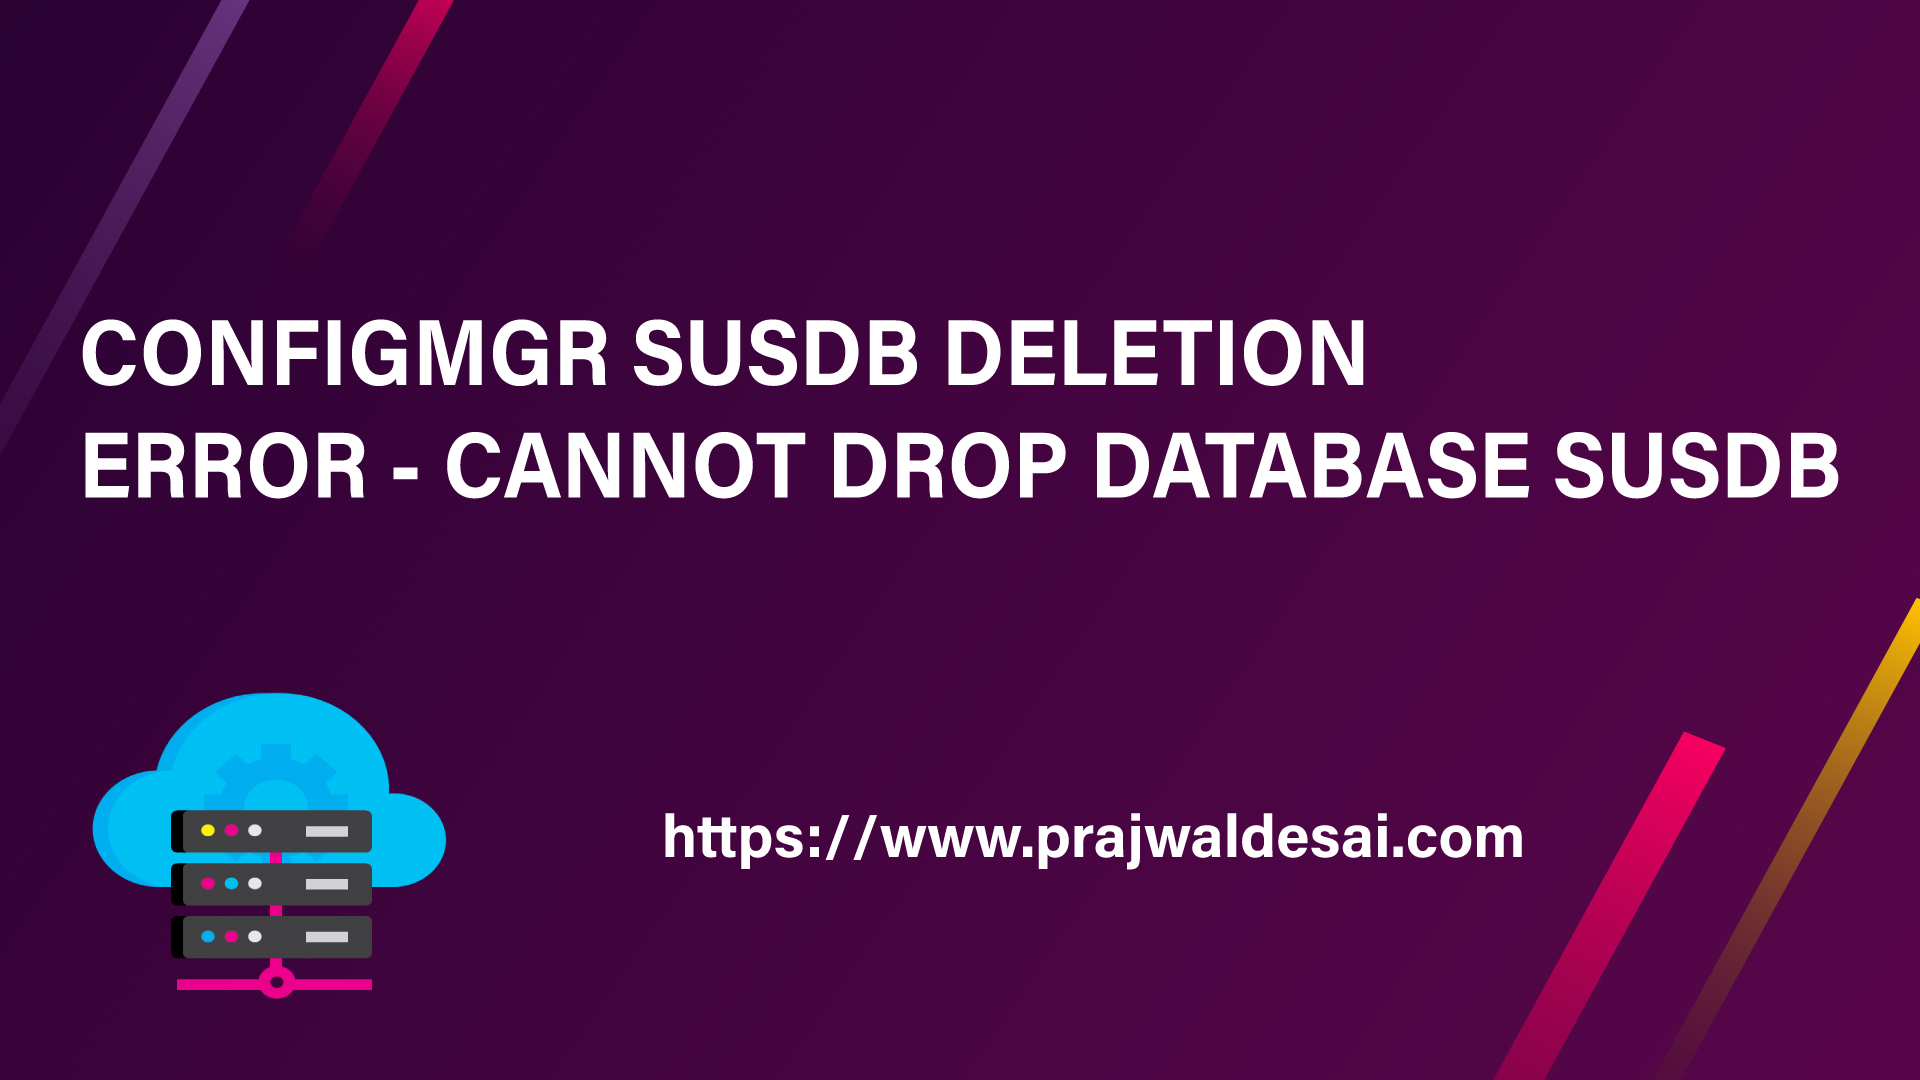 ConfigMgr SUSDB Deletion Error